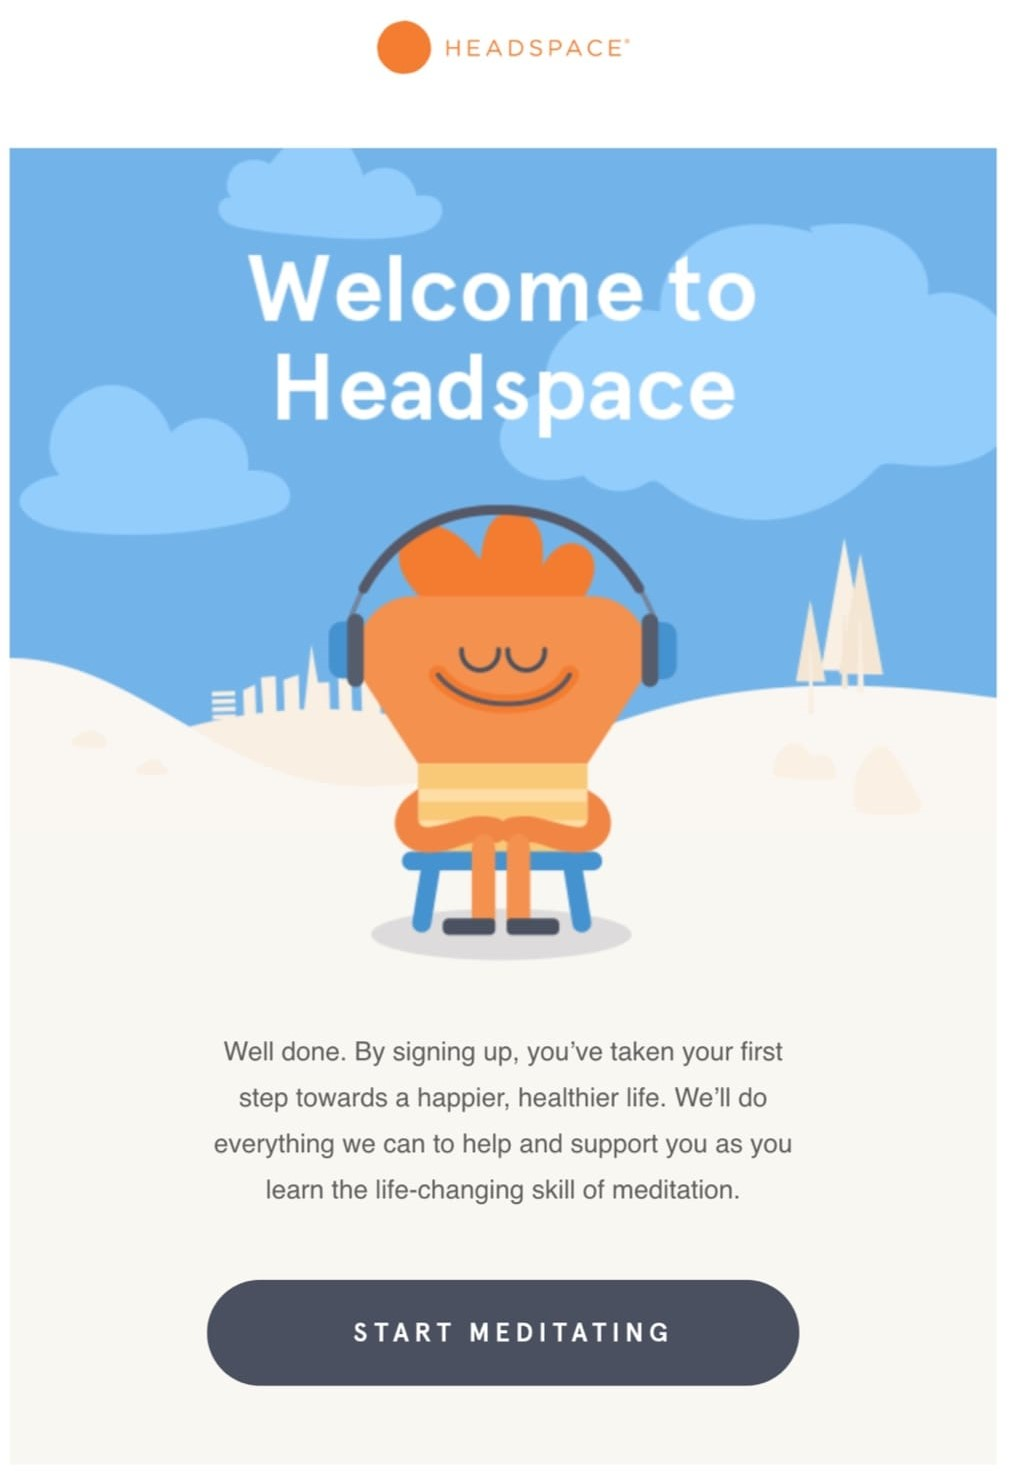 Welcome Email Example: Headspace